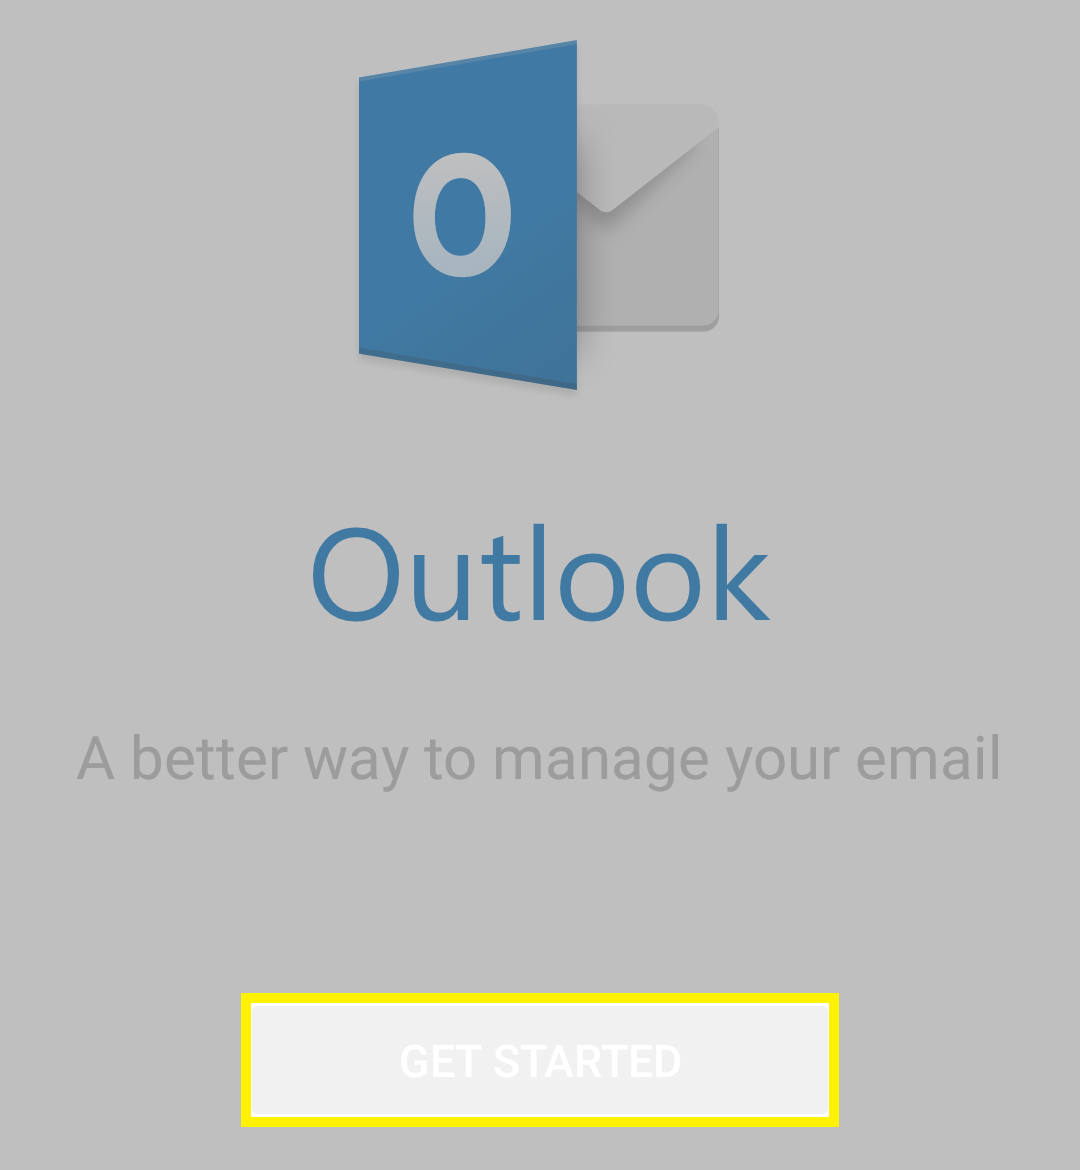 Outlook app on Android: Set up email | Office 365 from